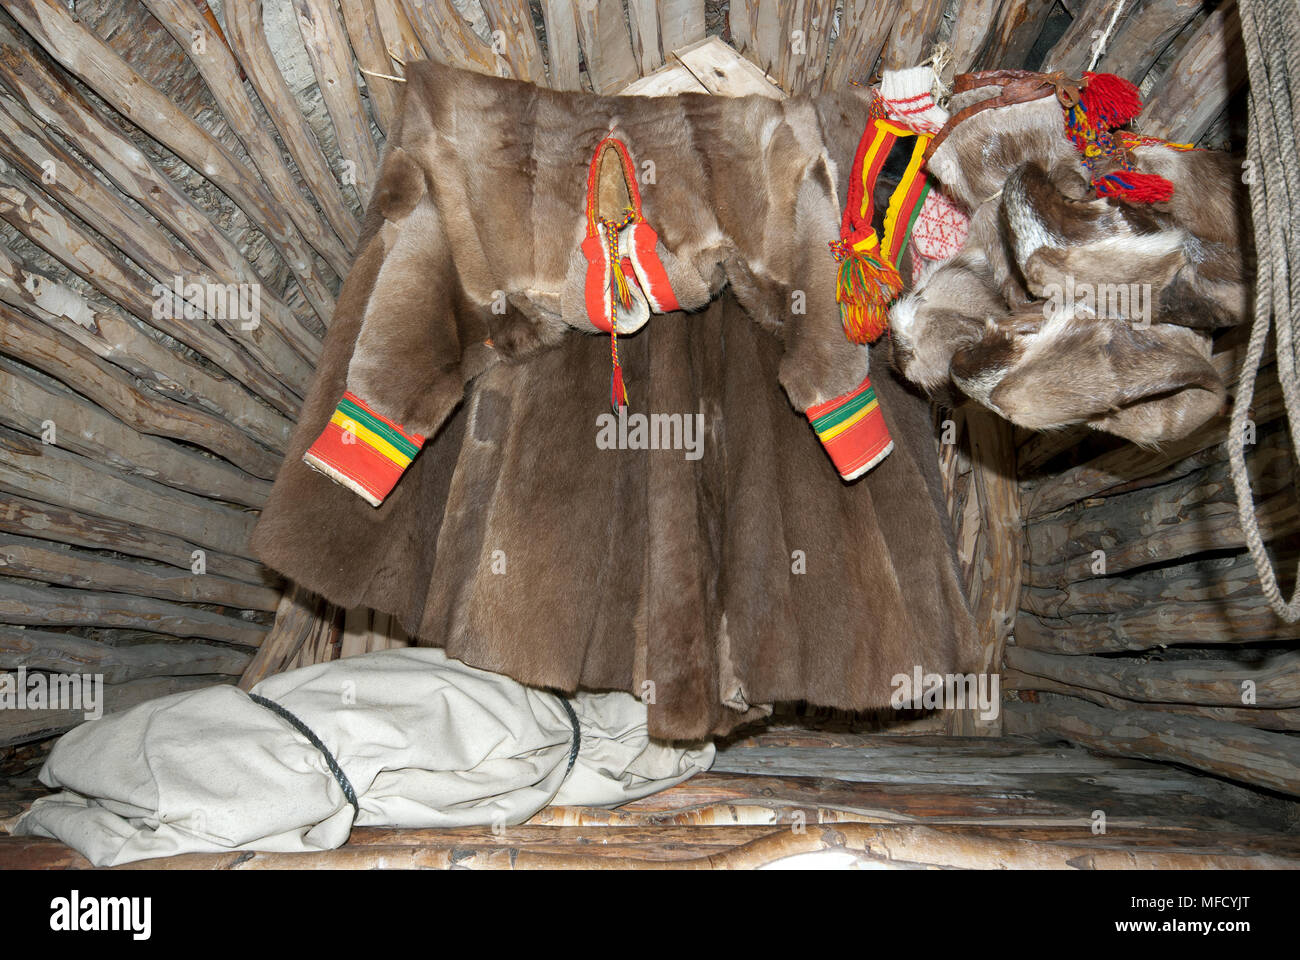 3c6fe5c38eb731 Hung Shoes Stockfotos   Hung Shoes Bilder - Alamy